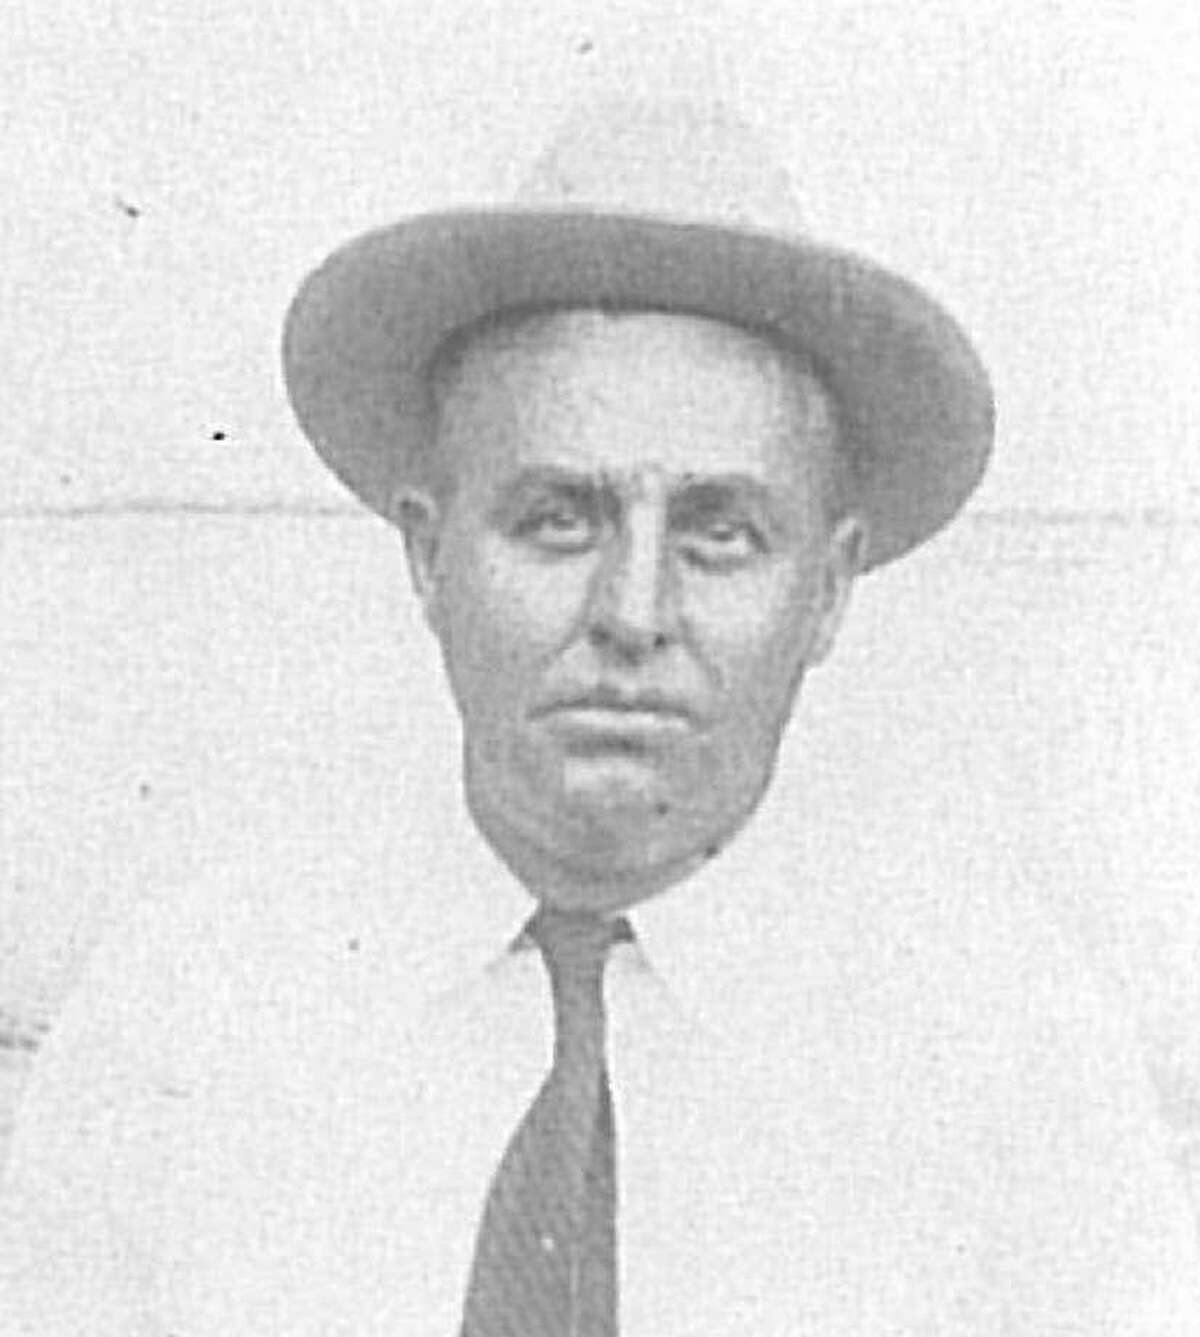 Montgomery County Sheriff from 1932 to 1936 Guy H. Hooper.